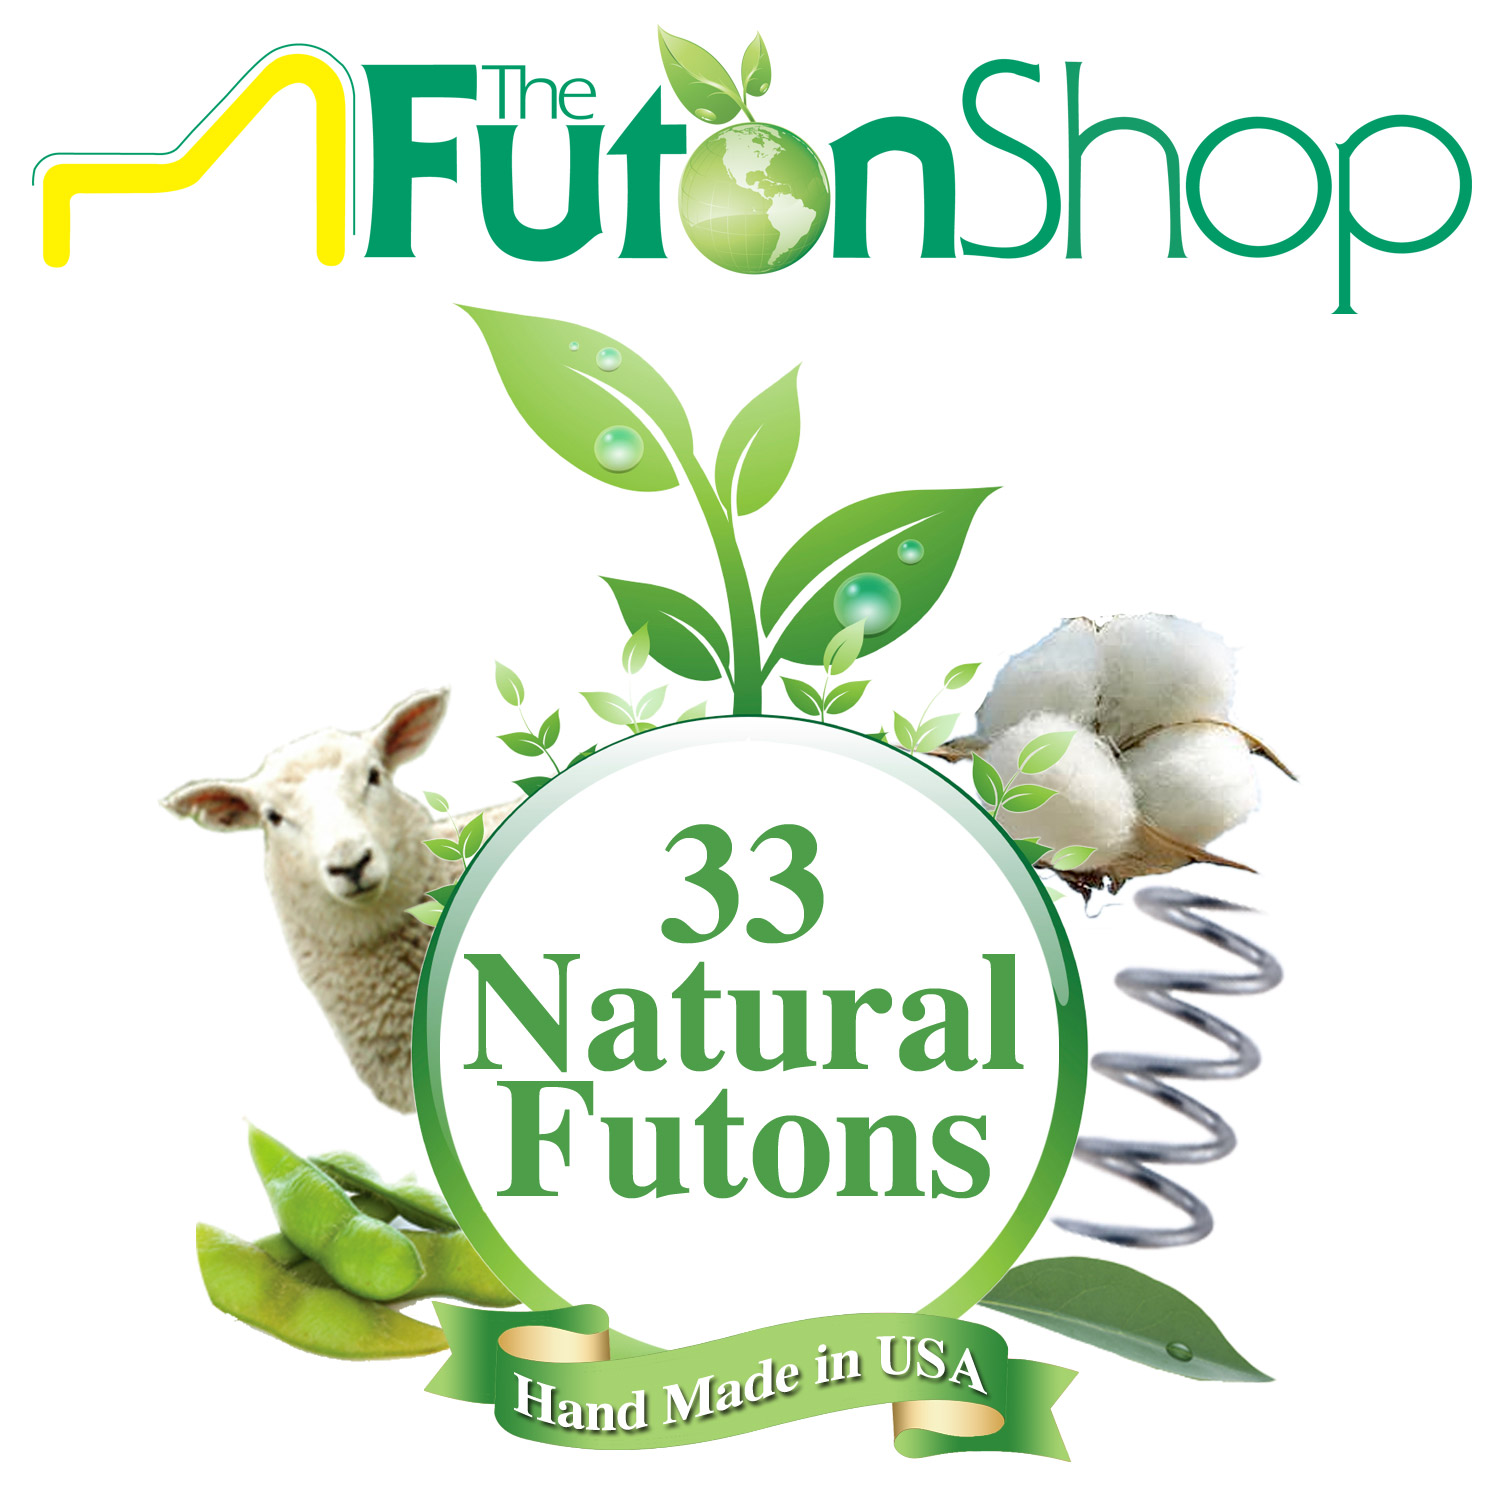 Pure Comfort Organic Cotton & Wool Futon Bed Mattress - Chemical Free Organic Cotton & MicroCoils - Medium Firm by The Futon Shop